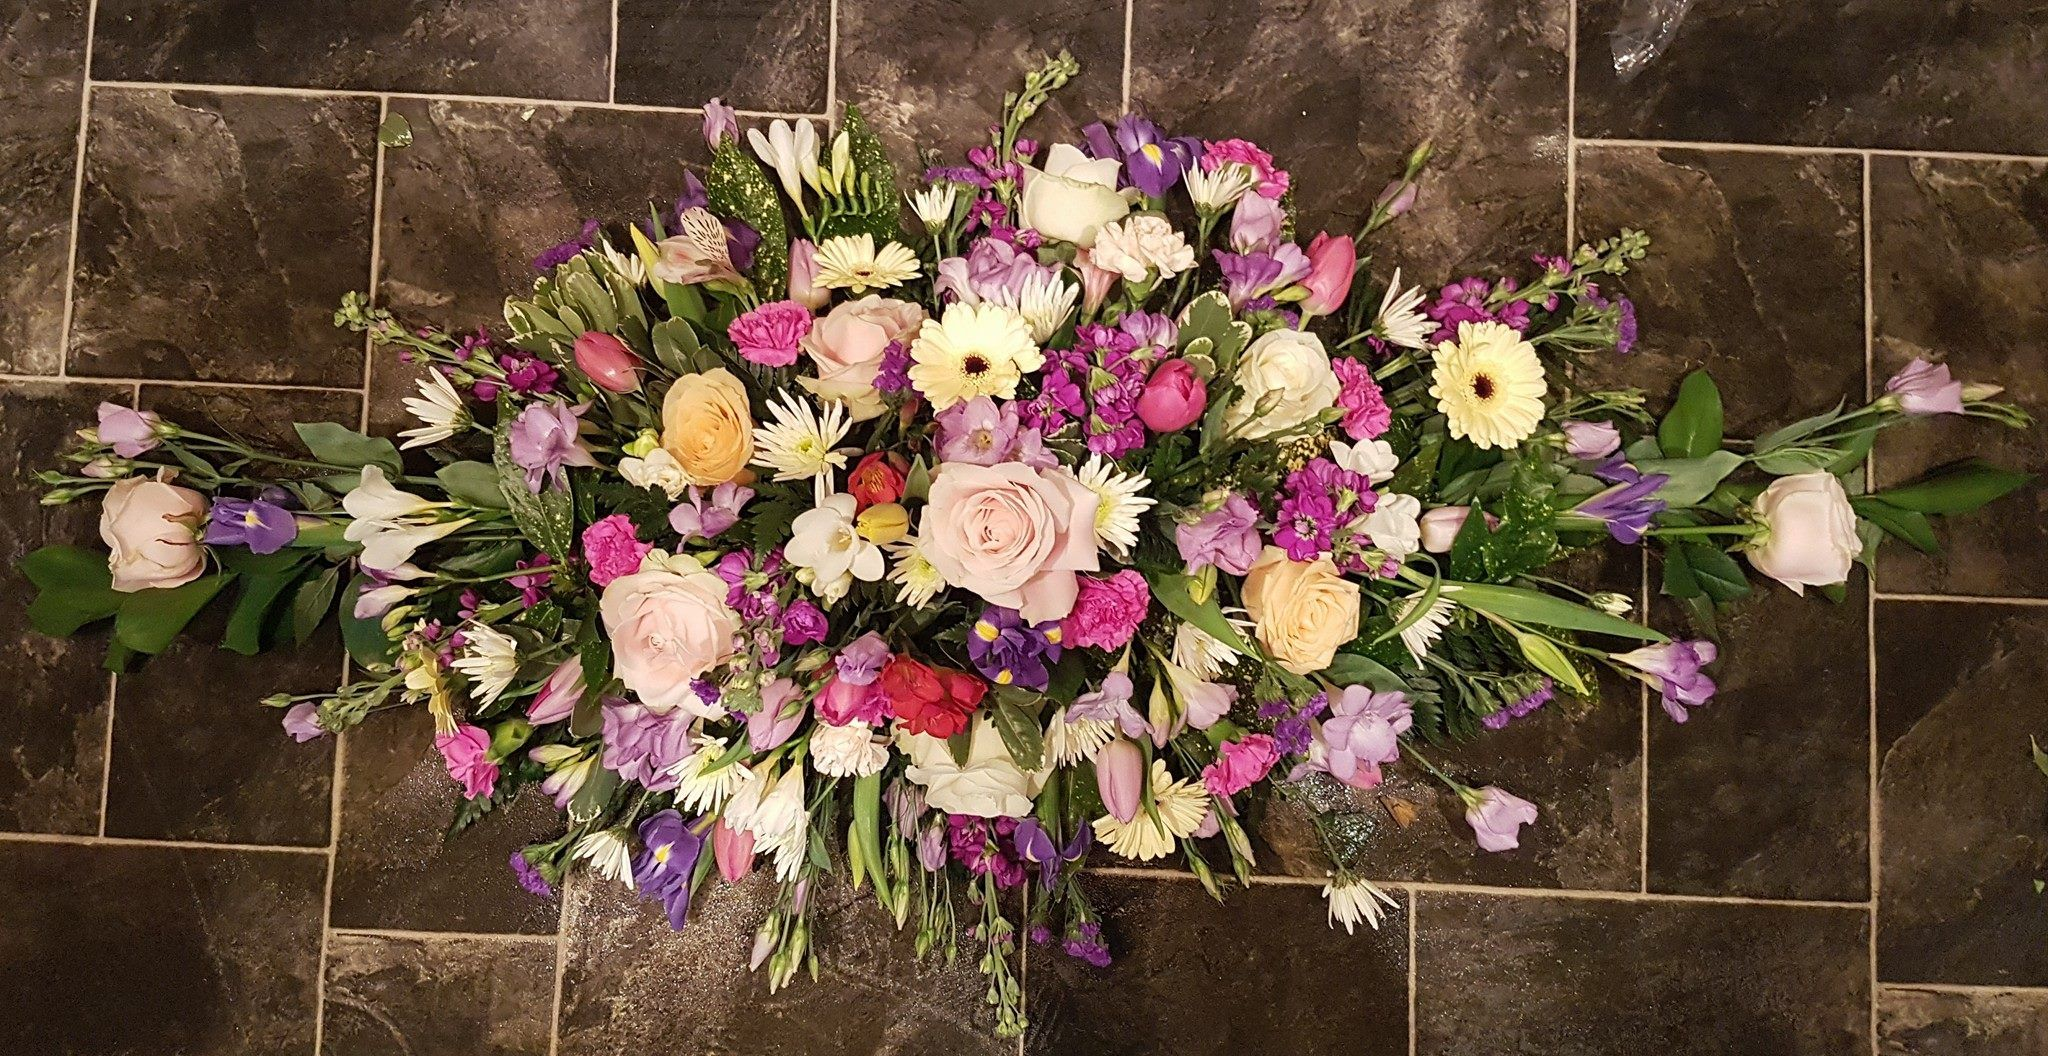 Funeral Flowers And Tributes In Carlisle Oopsie Daisy Flowers